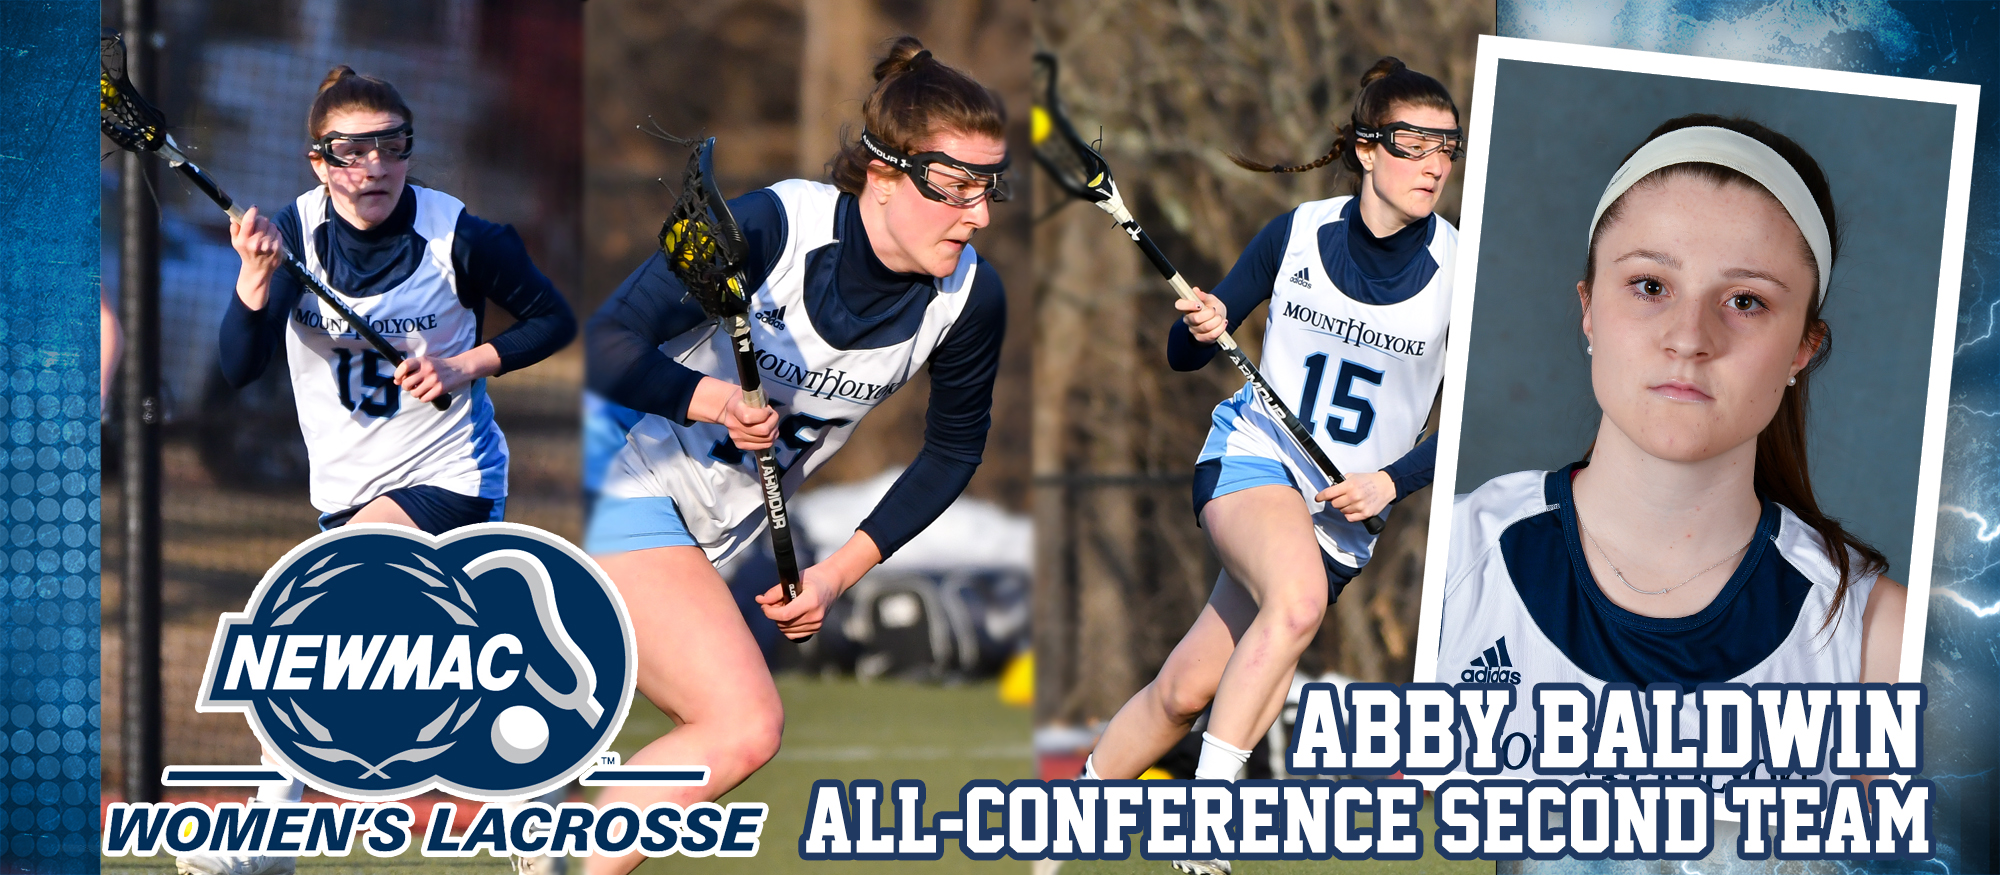 Photo featuring a variety of images of first year Abby Baldwin, who was named to the NEWMAC Lacrosse All-Conference Second Team on May 9, 2019.